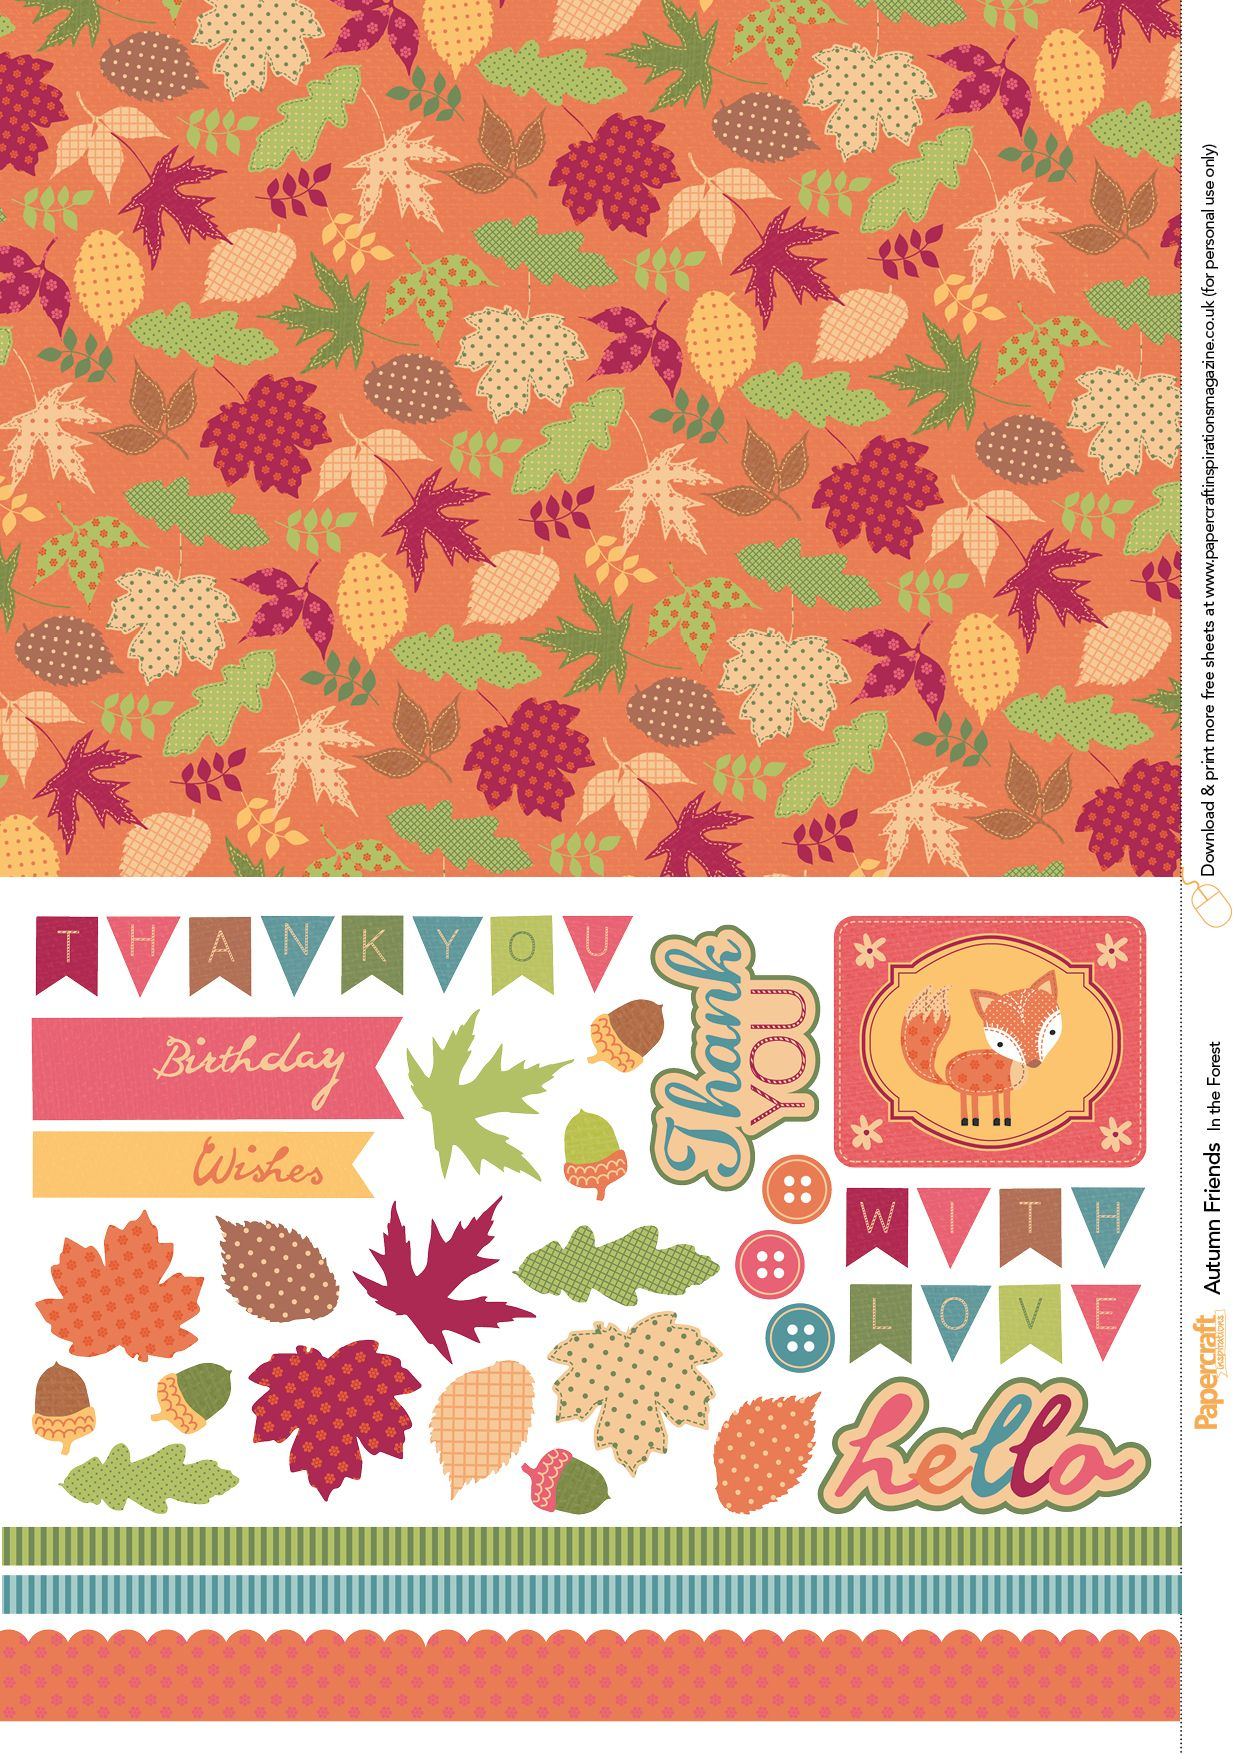 Autumn Friends Free Printables From Papercraft Inspirations Issue - Free Printable Fall Scrapbook Paper